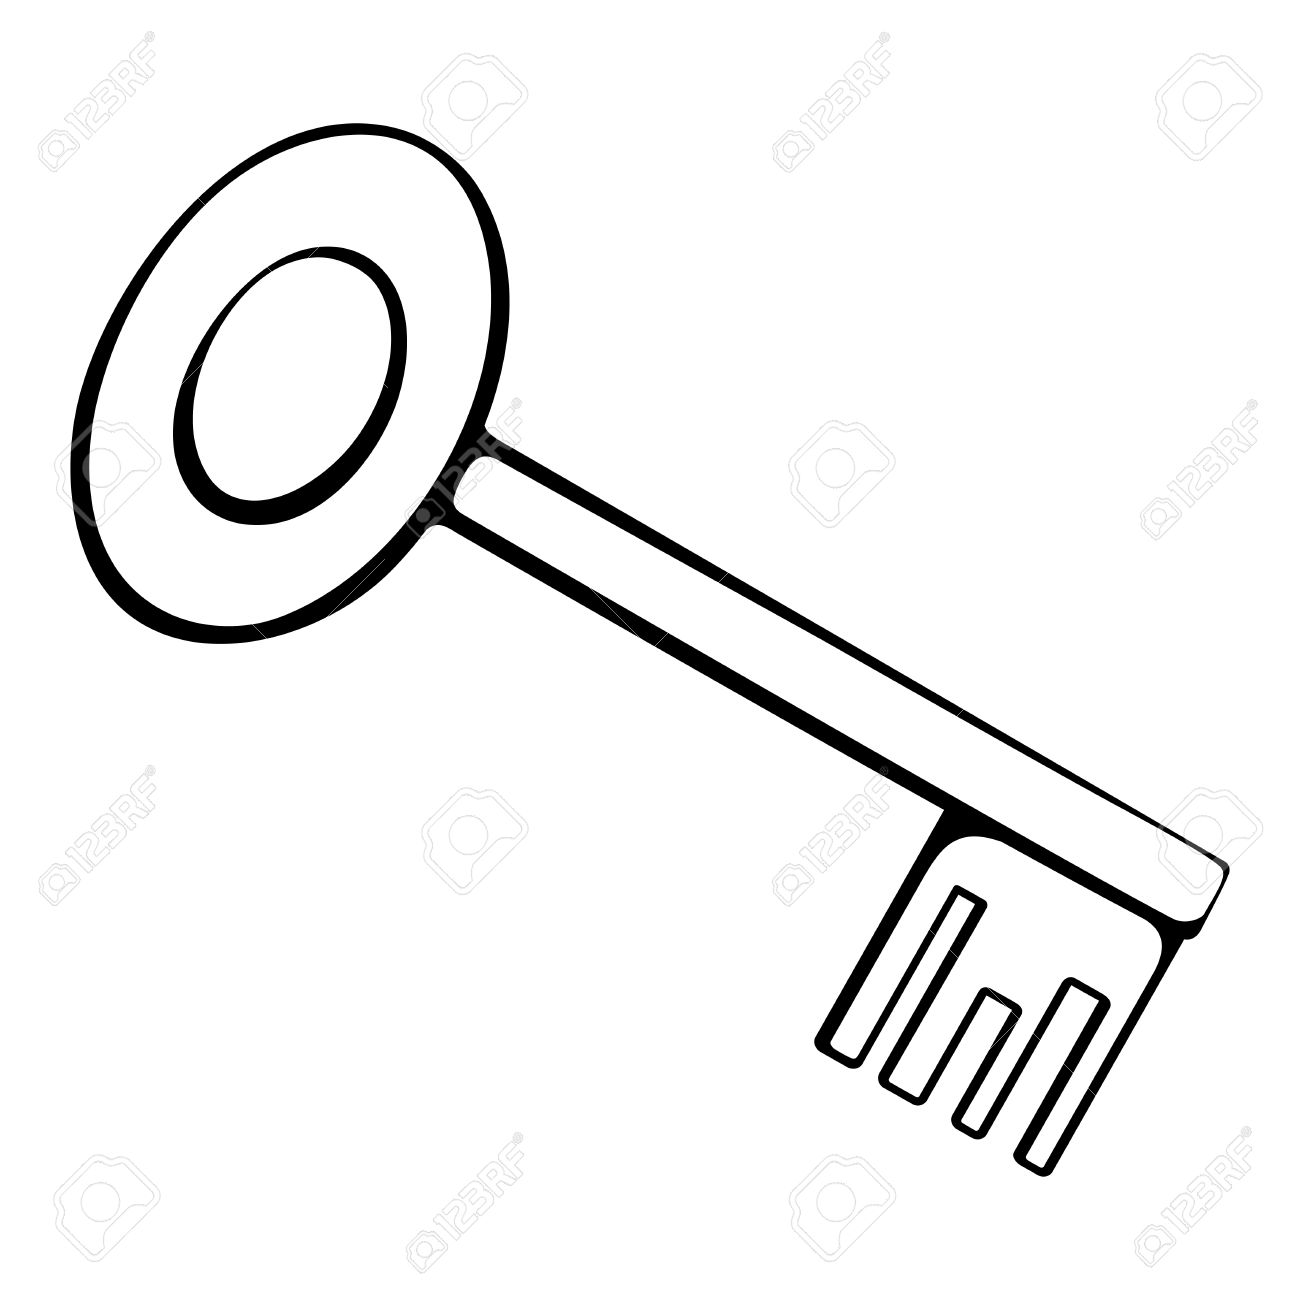 Black And White Outline Of The Key Royalty Free Cliparts, Vectors.